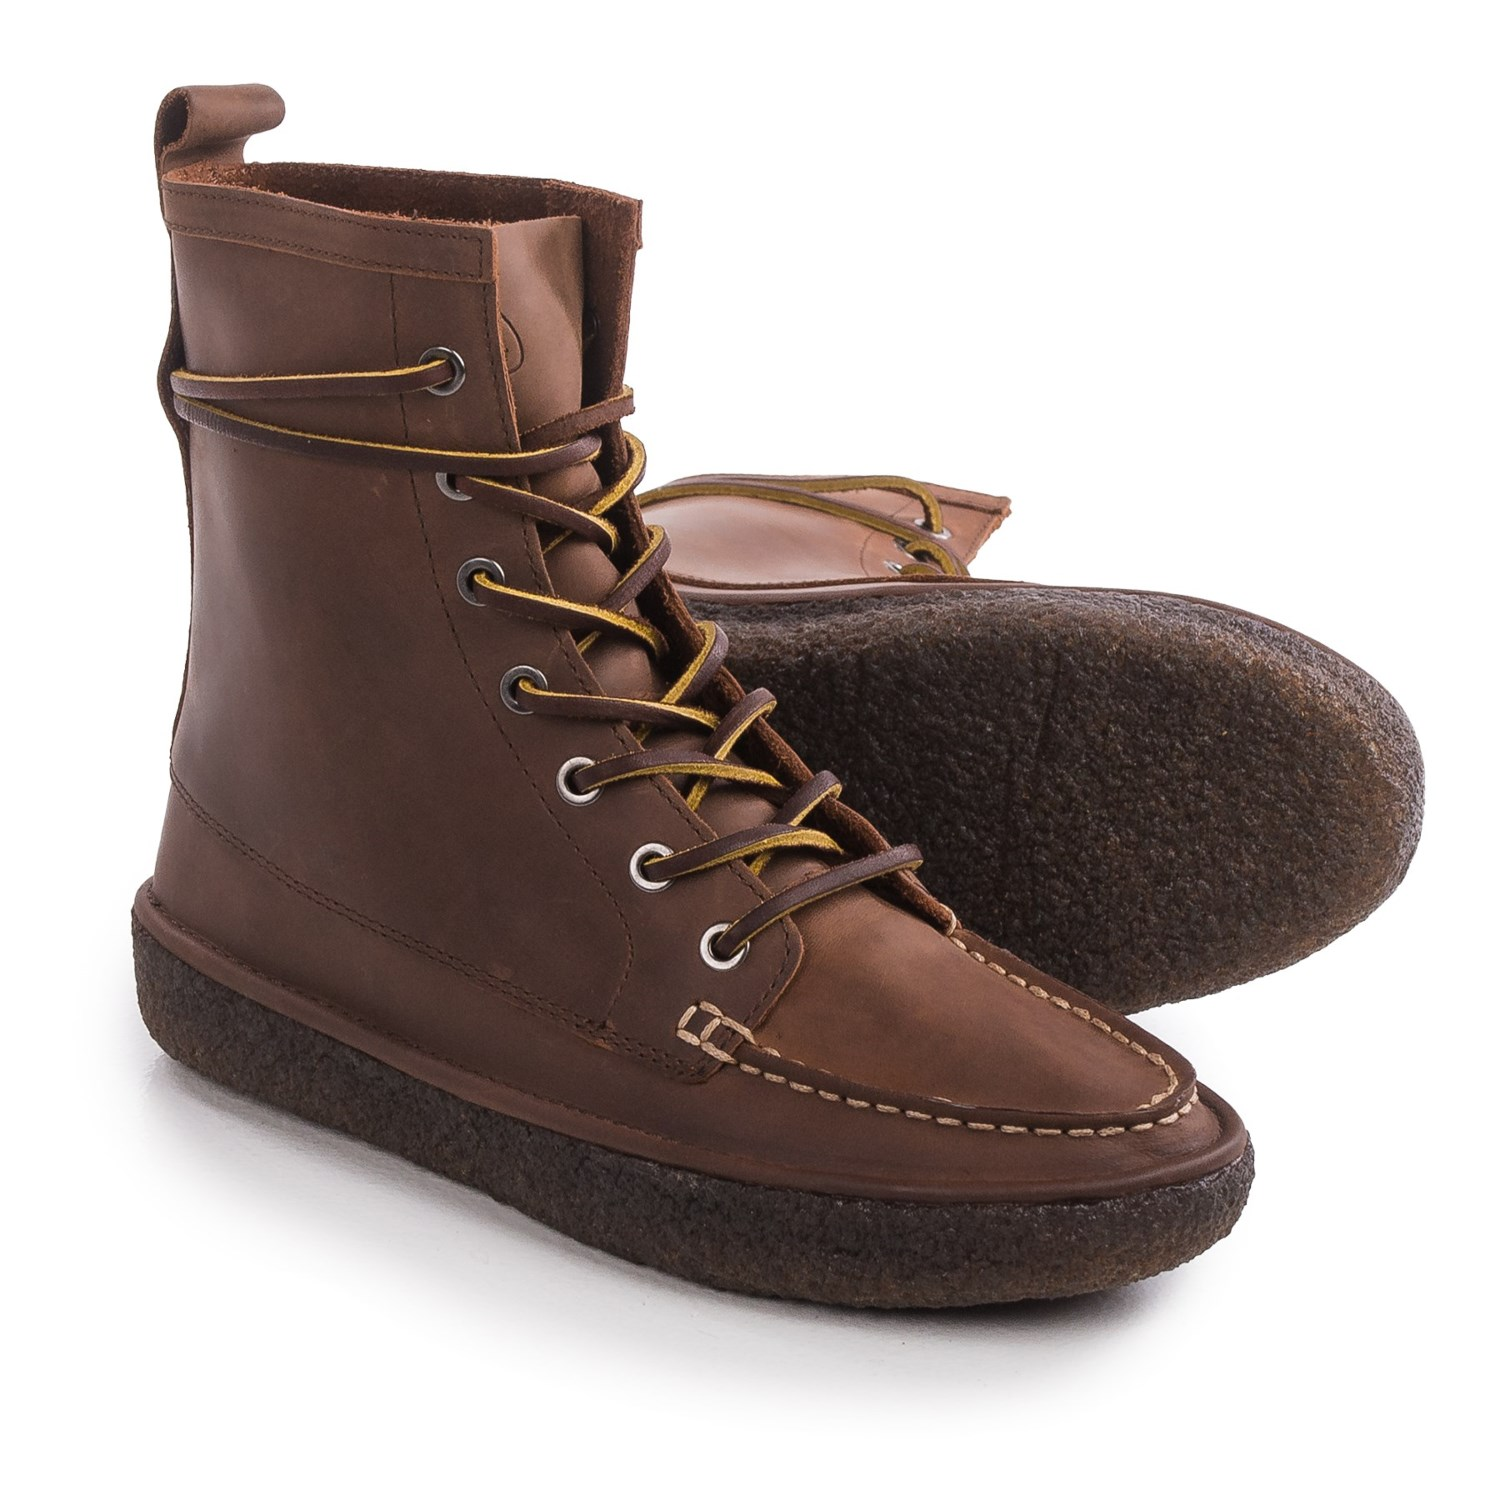 Seavees 02  60 7-eye Trail Boots  For Women